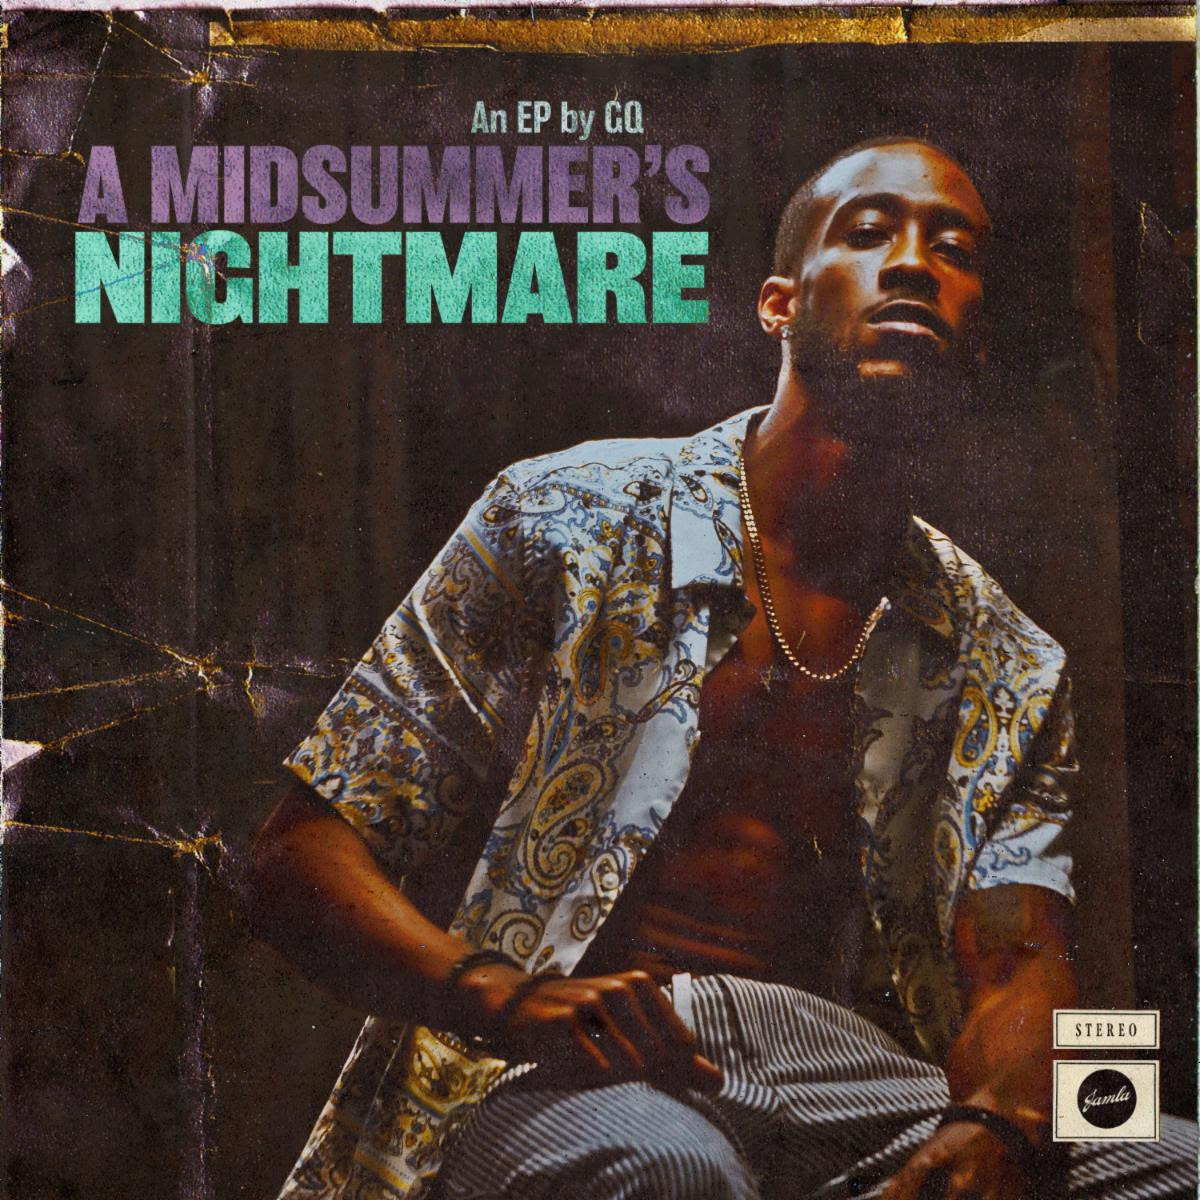 A_midsummer_s_nightmare_ep_gq